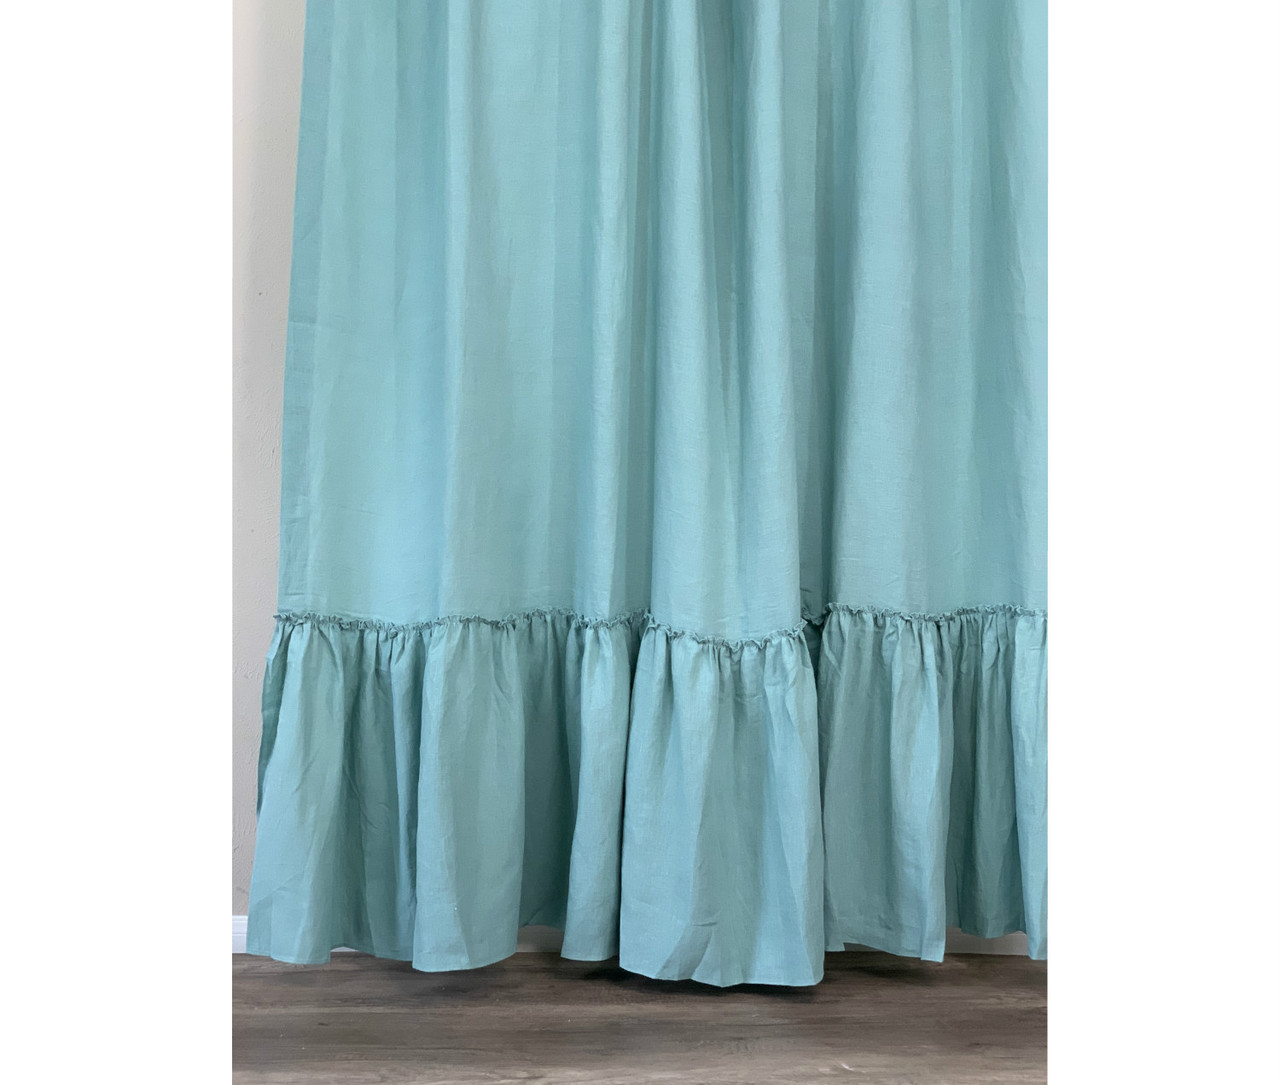 Moss Green Linen Shower Curtain With Country Mermaid Long Ruffles